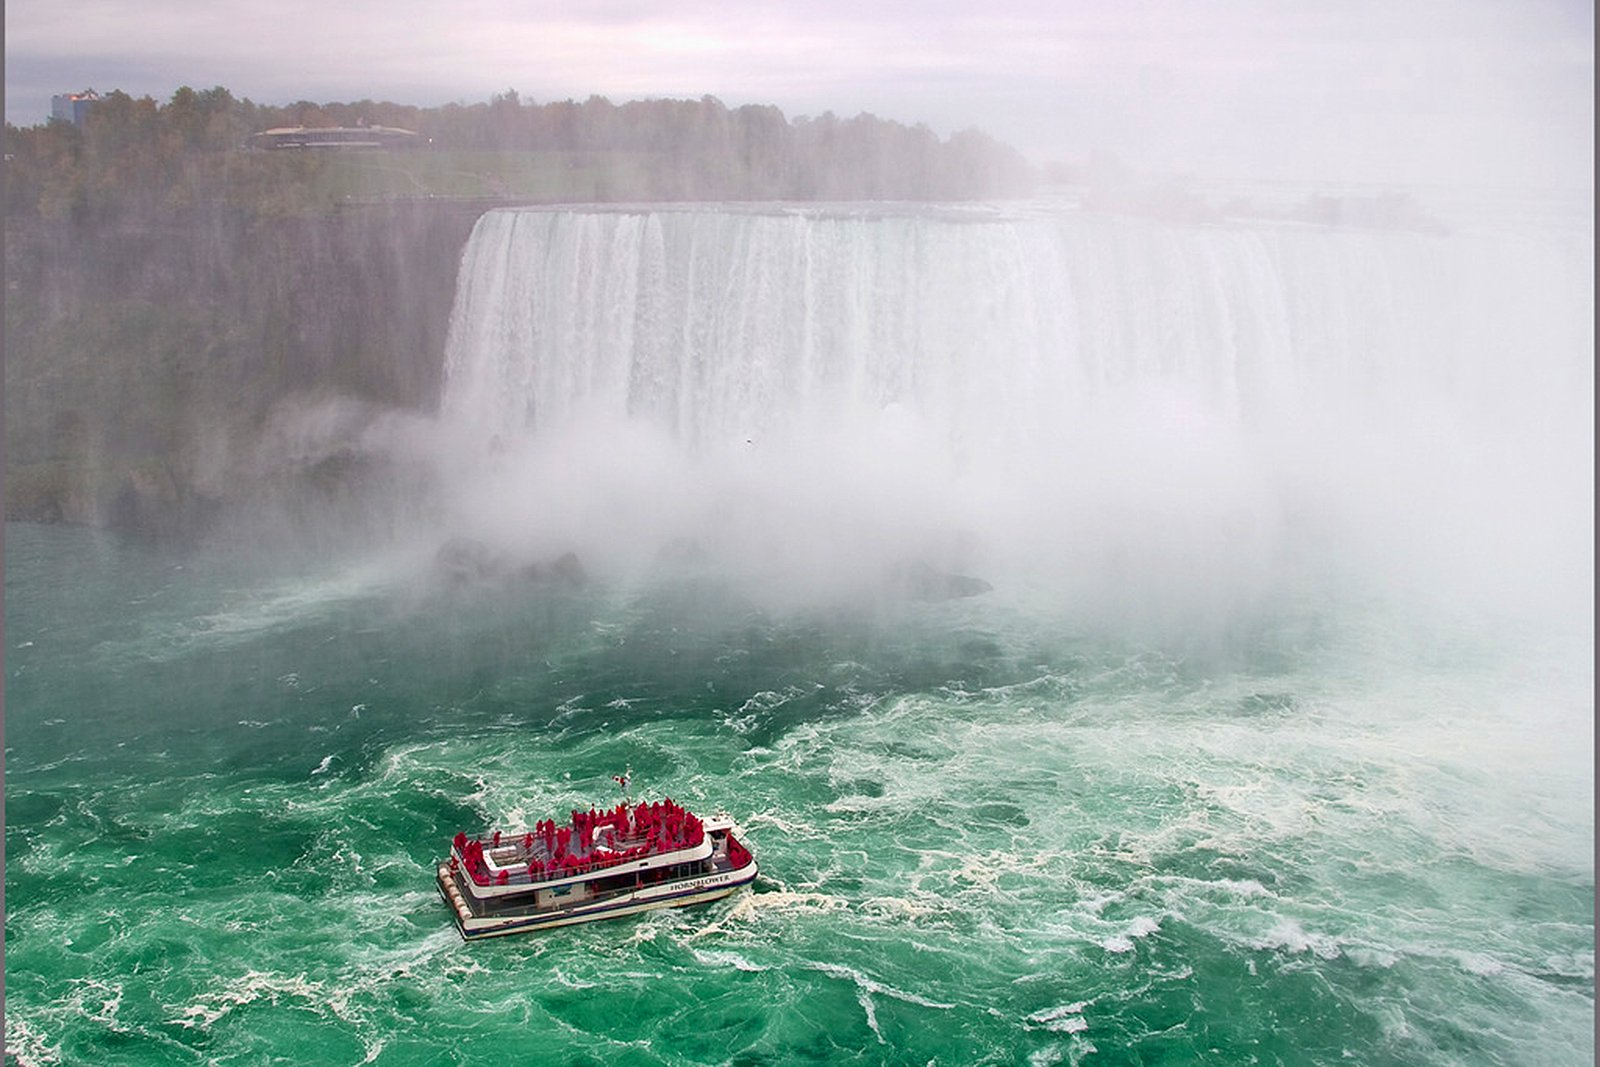 How to take a boat to Niagara Falls in Toronto